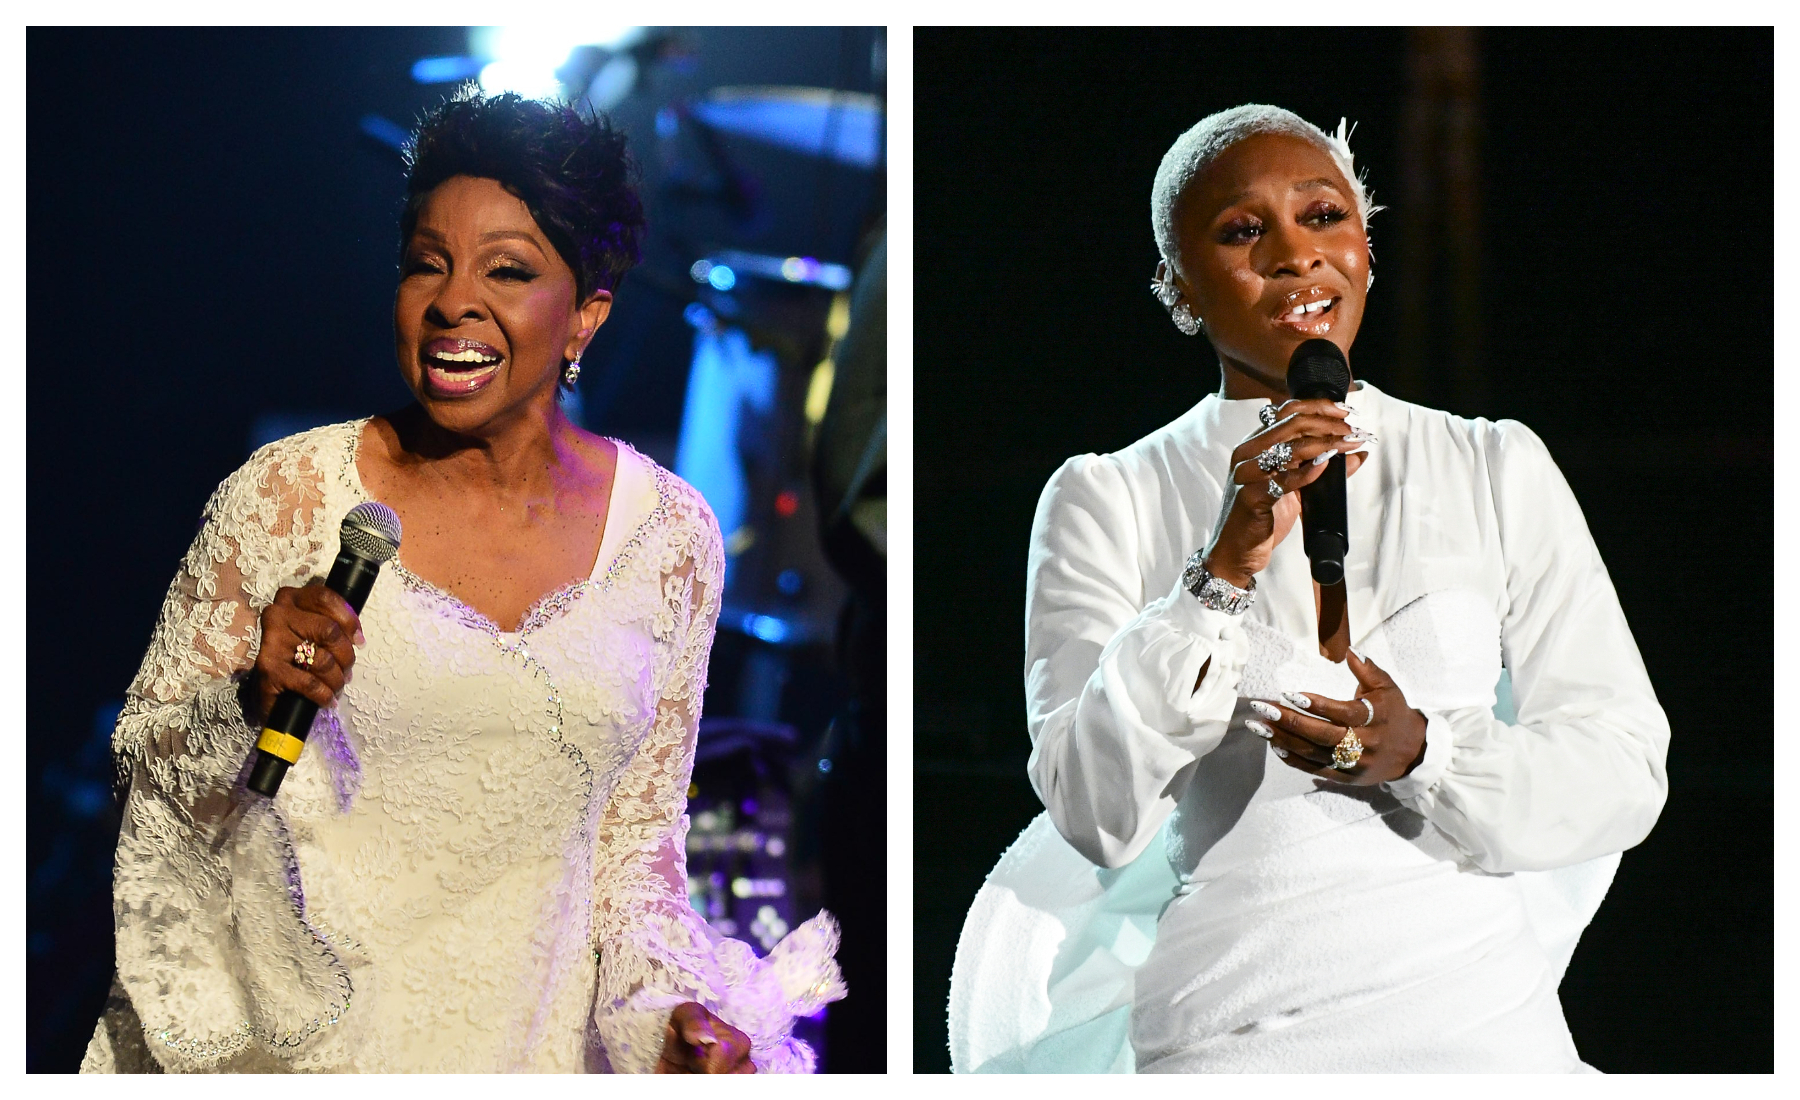 Gladys Knight, Cynthia Erivo Tapped for 'A Grammy Salute to the Sounds of Change'